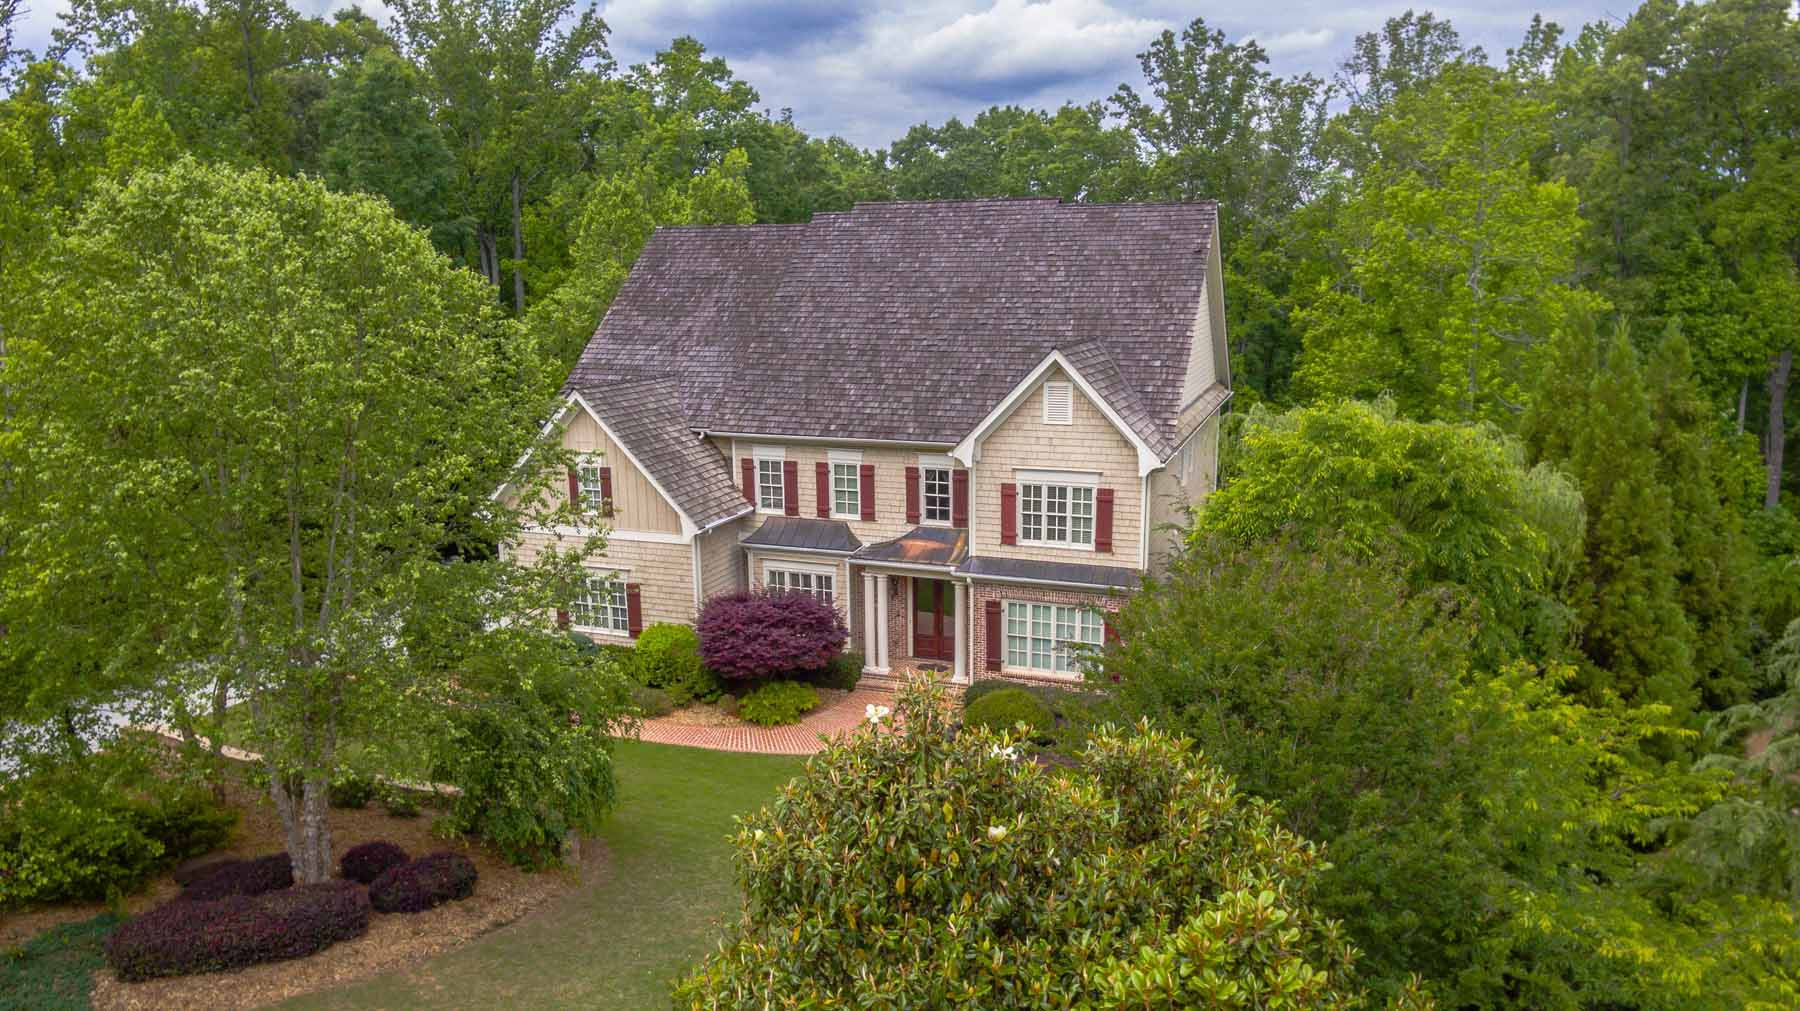 一戸建て のために 売買 アット Exquisite Executive Home with Custom Heated Pool and Cascading Stream in Milton 13220 Owens Way Alpharetta, ジョージア, 30004 アメリカ合衆国